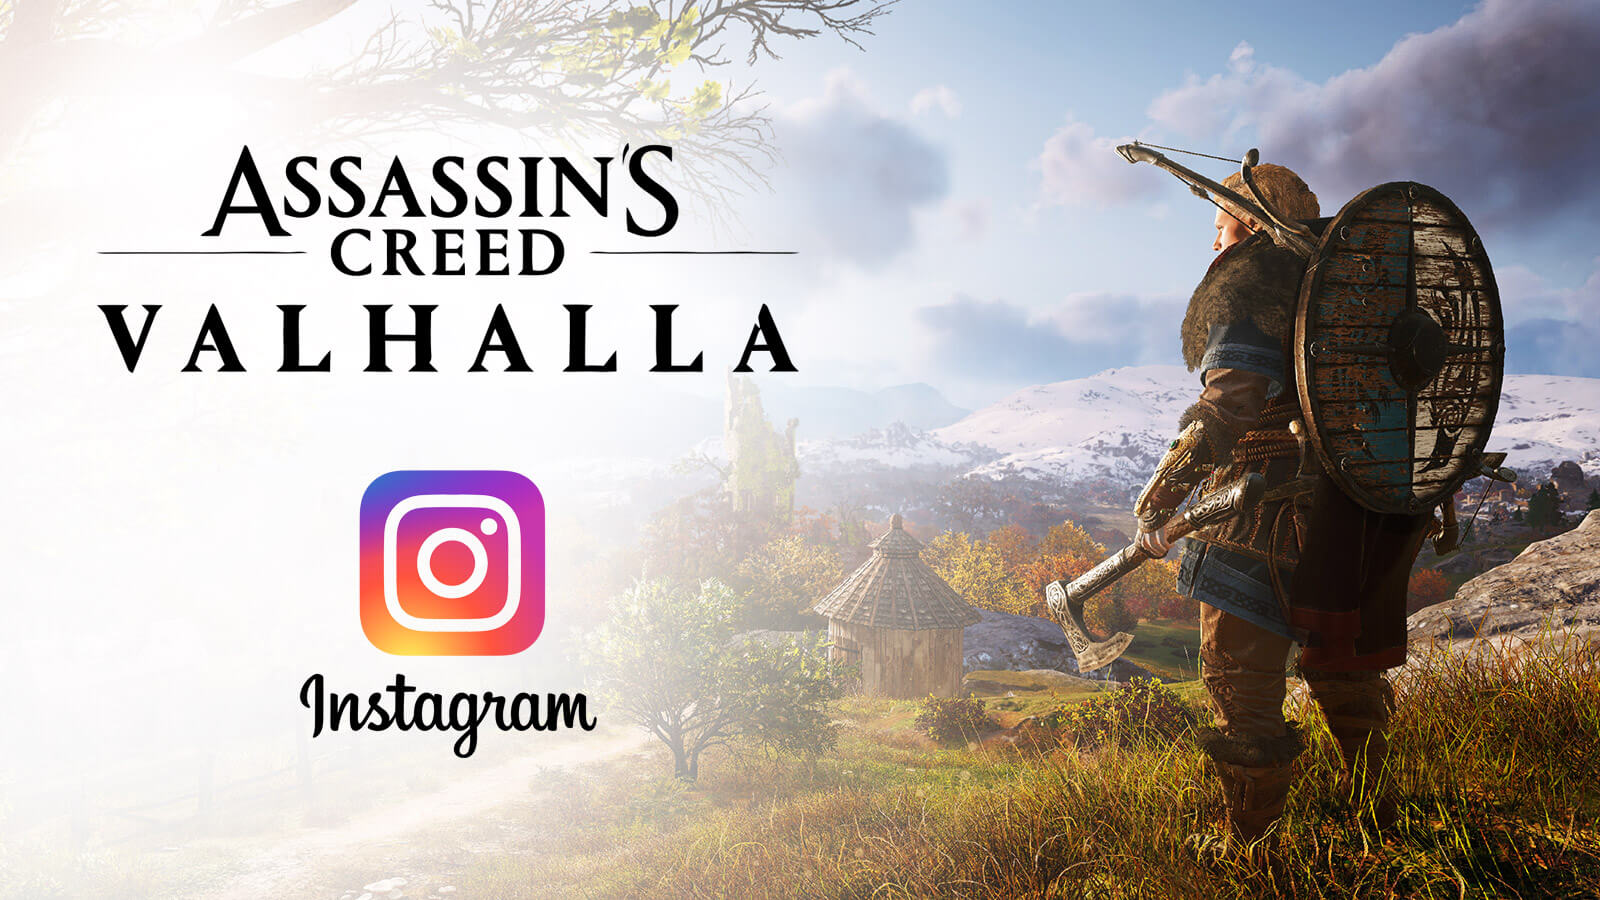 Assassin S Creed Valhalla Release Date Leaked On Instagram